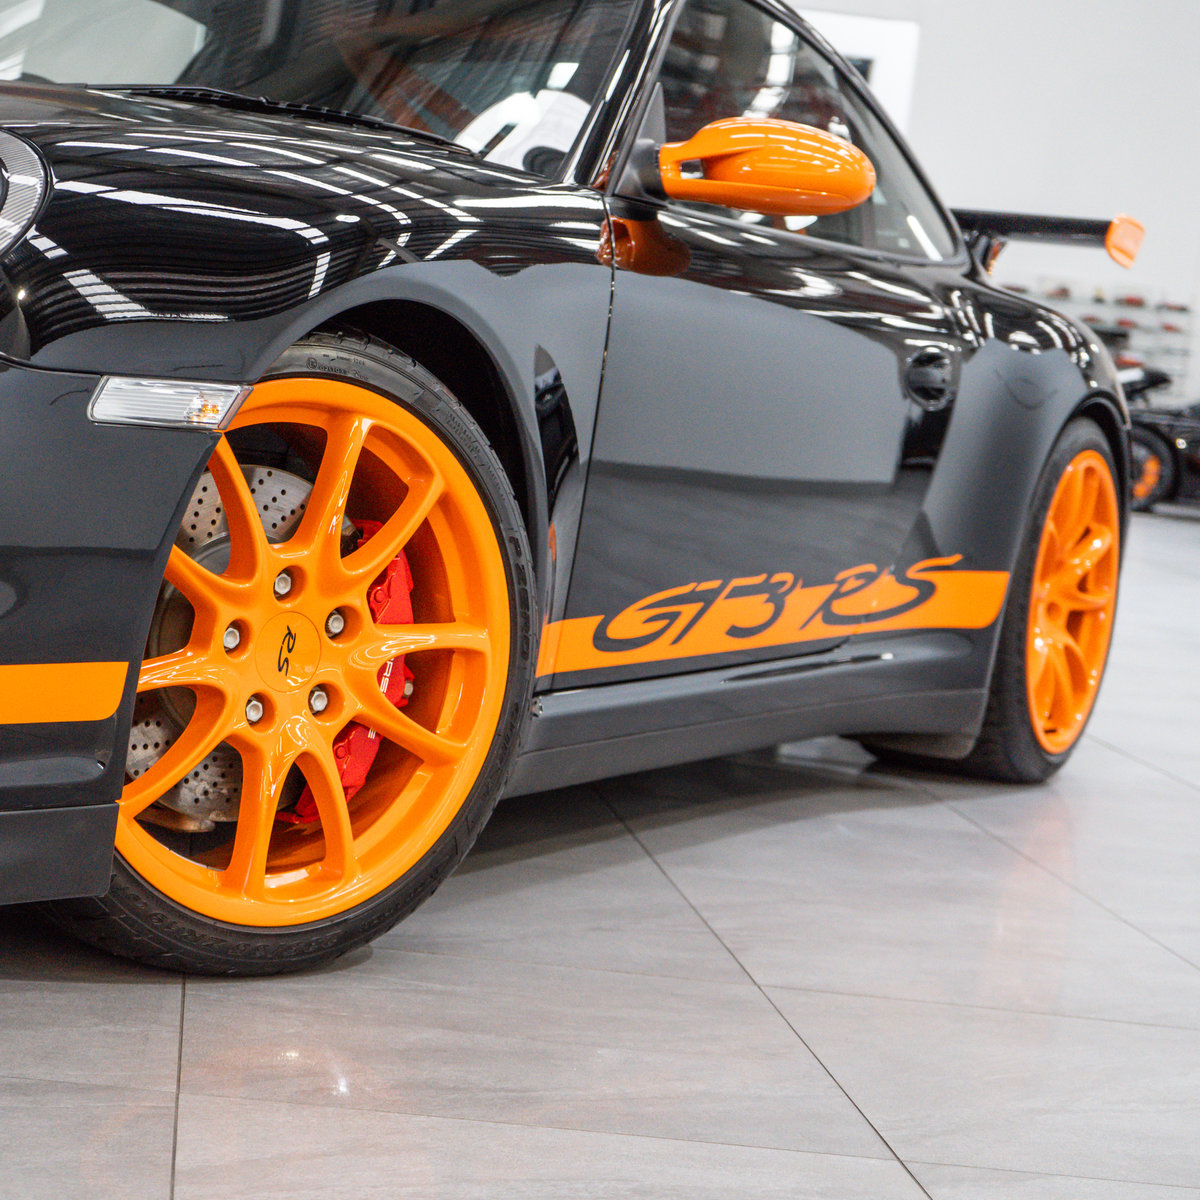 2007 PORSCHE 911 GT3 RS 997.1 For Sale (picture 5 of 6)